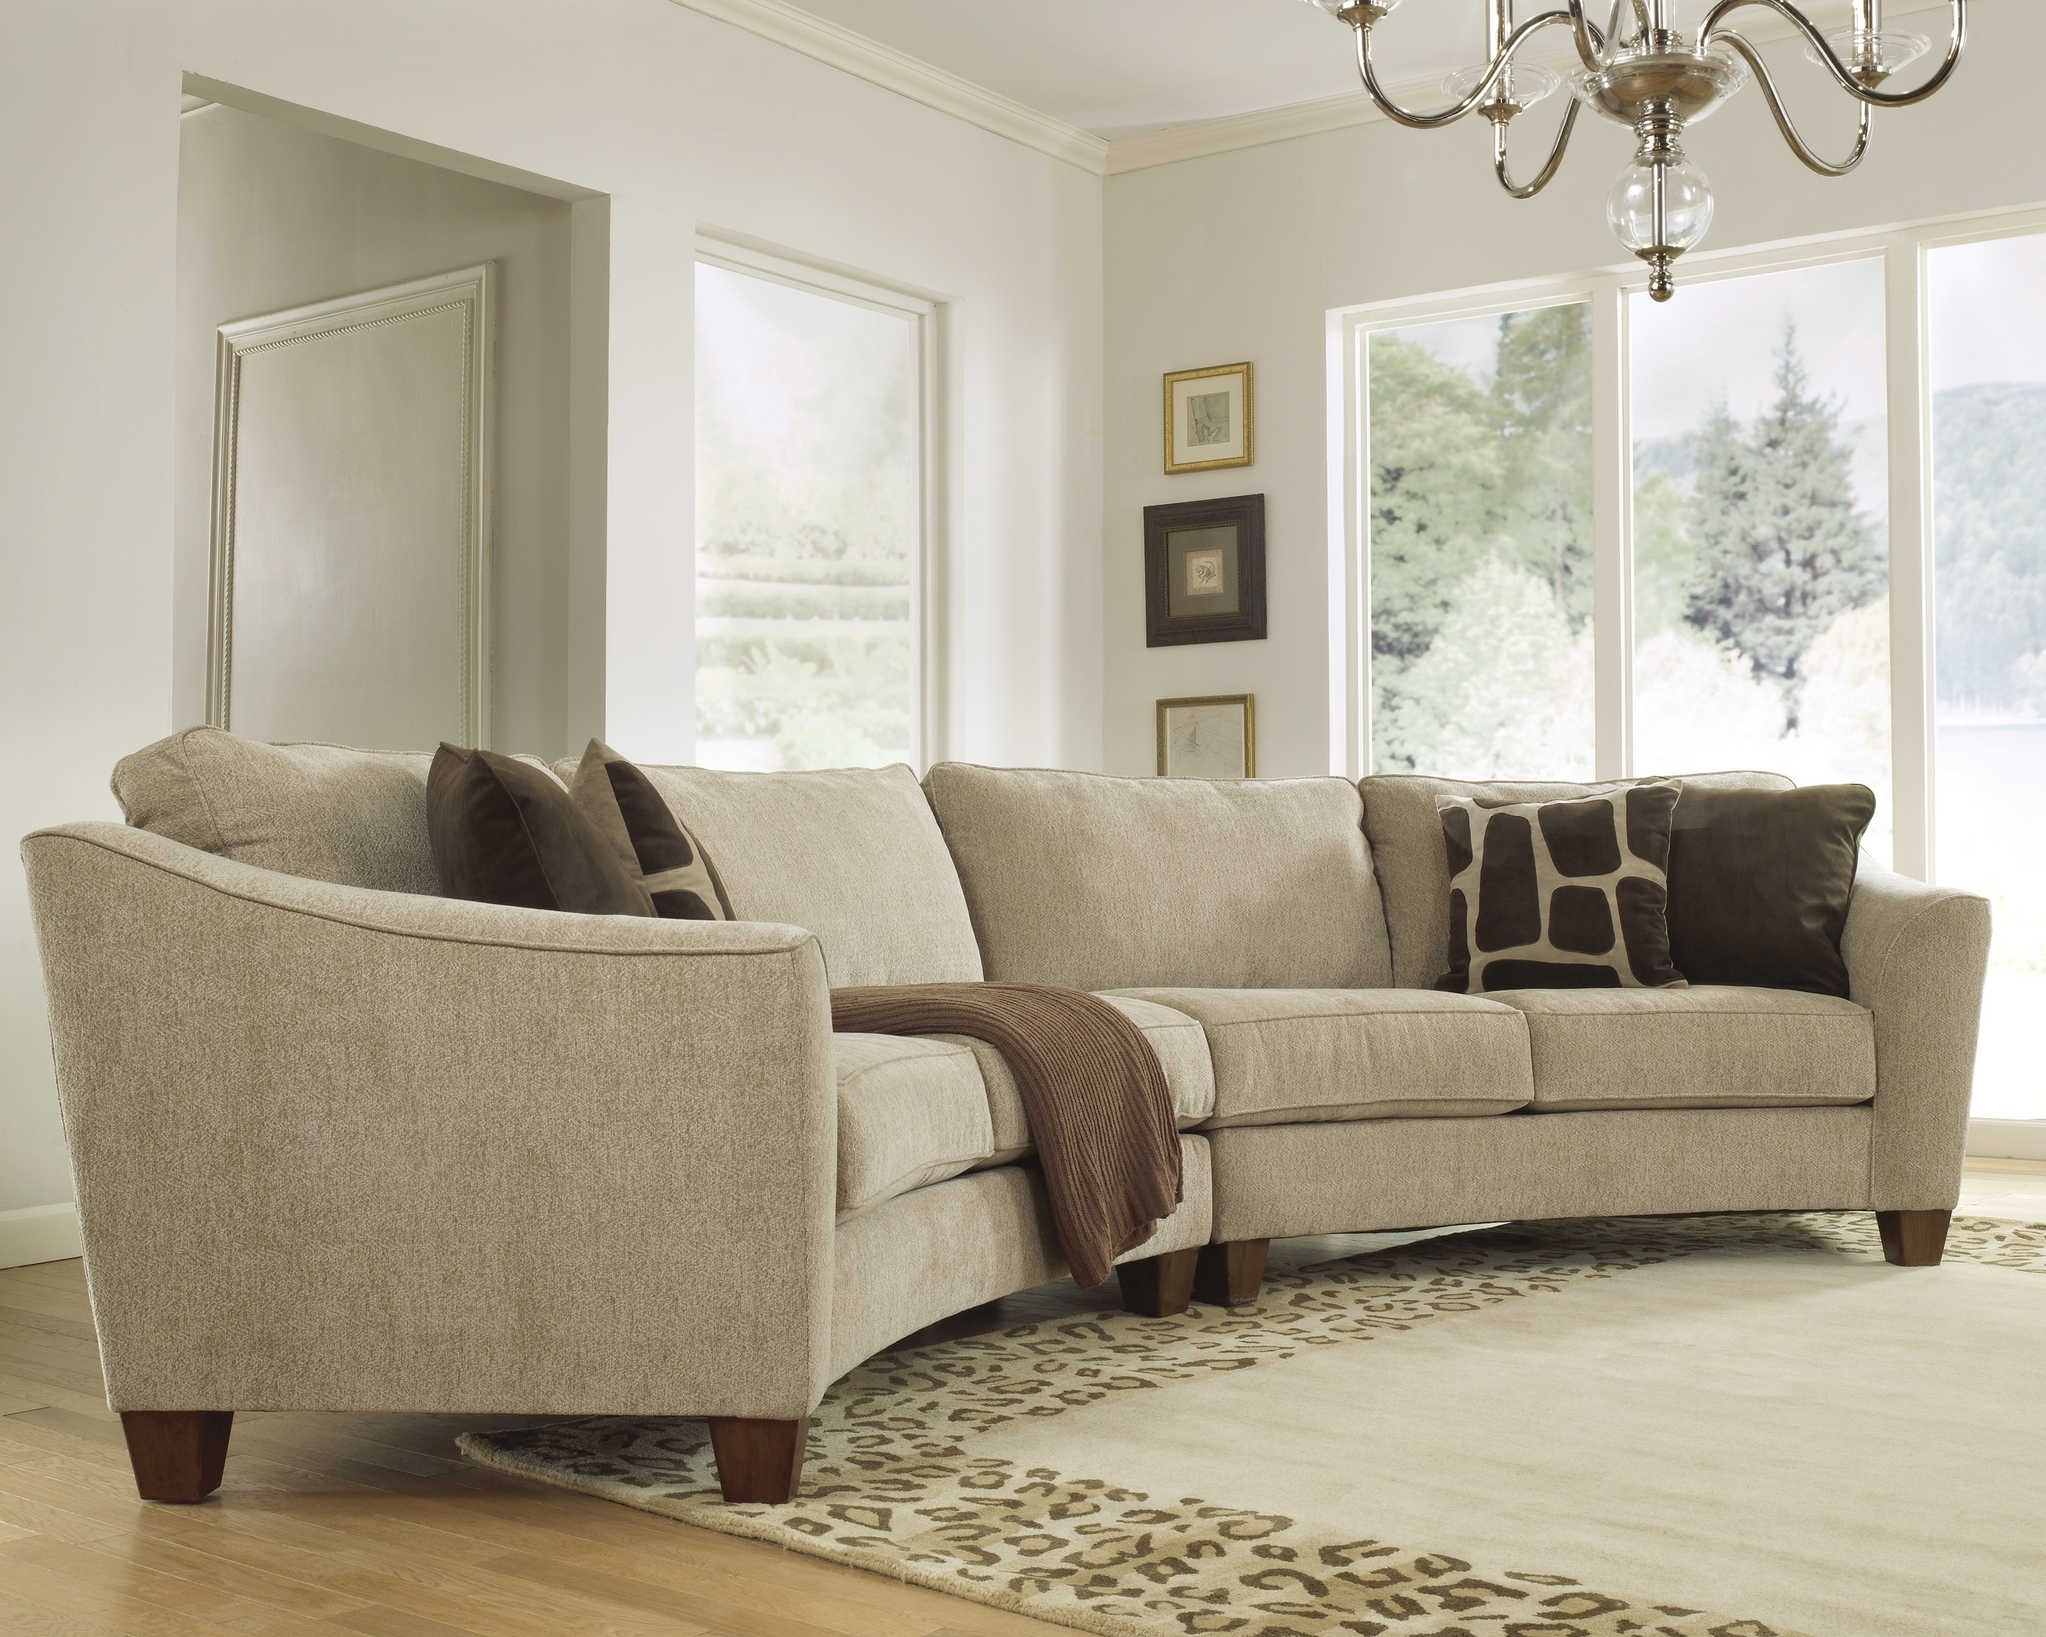 Curved Sofa Ashley Furniture - Best Sectional Sofa Ideas with Wichita Ks Sectional Sofas (Image 8 of 10)